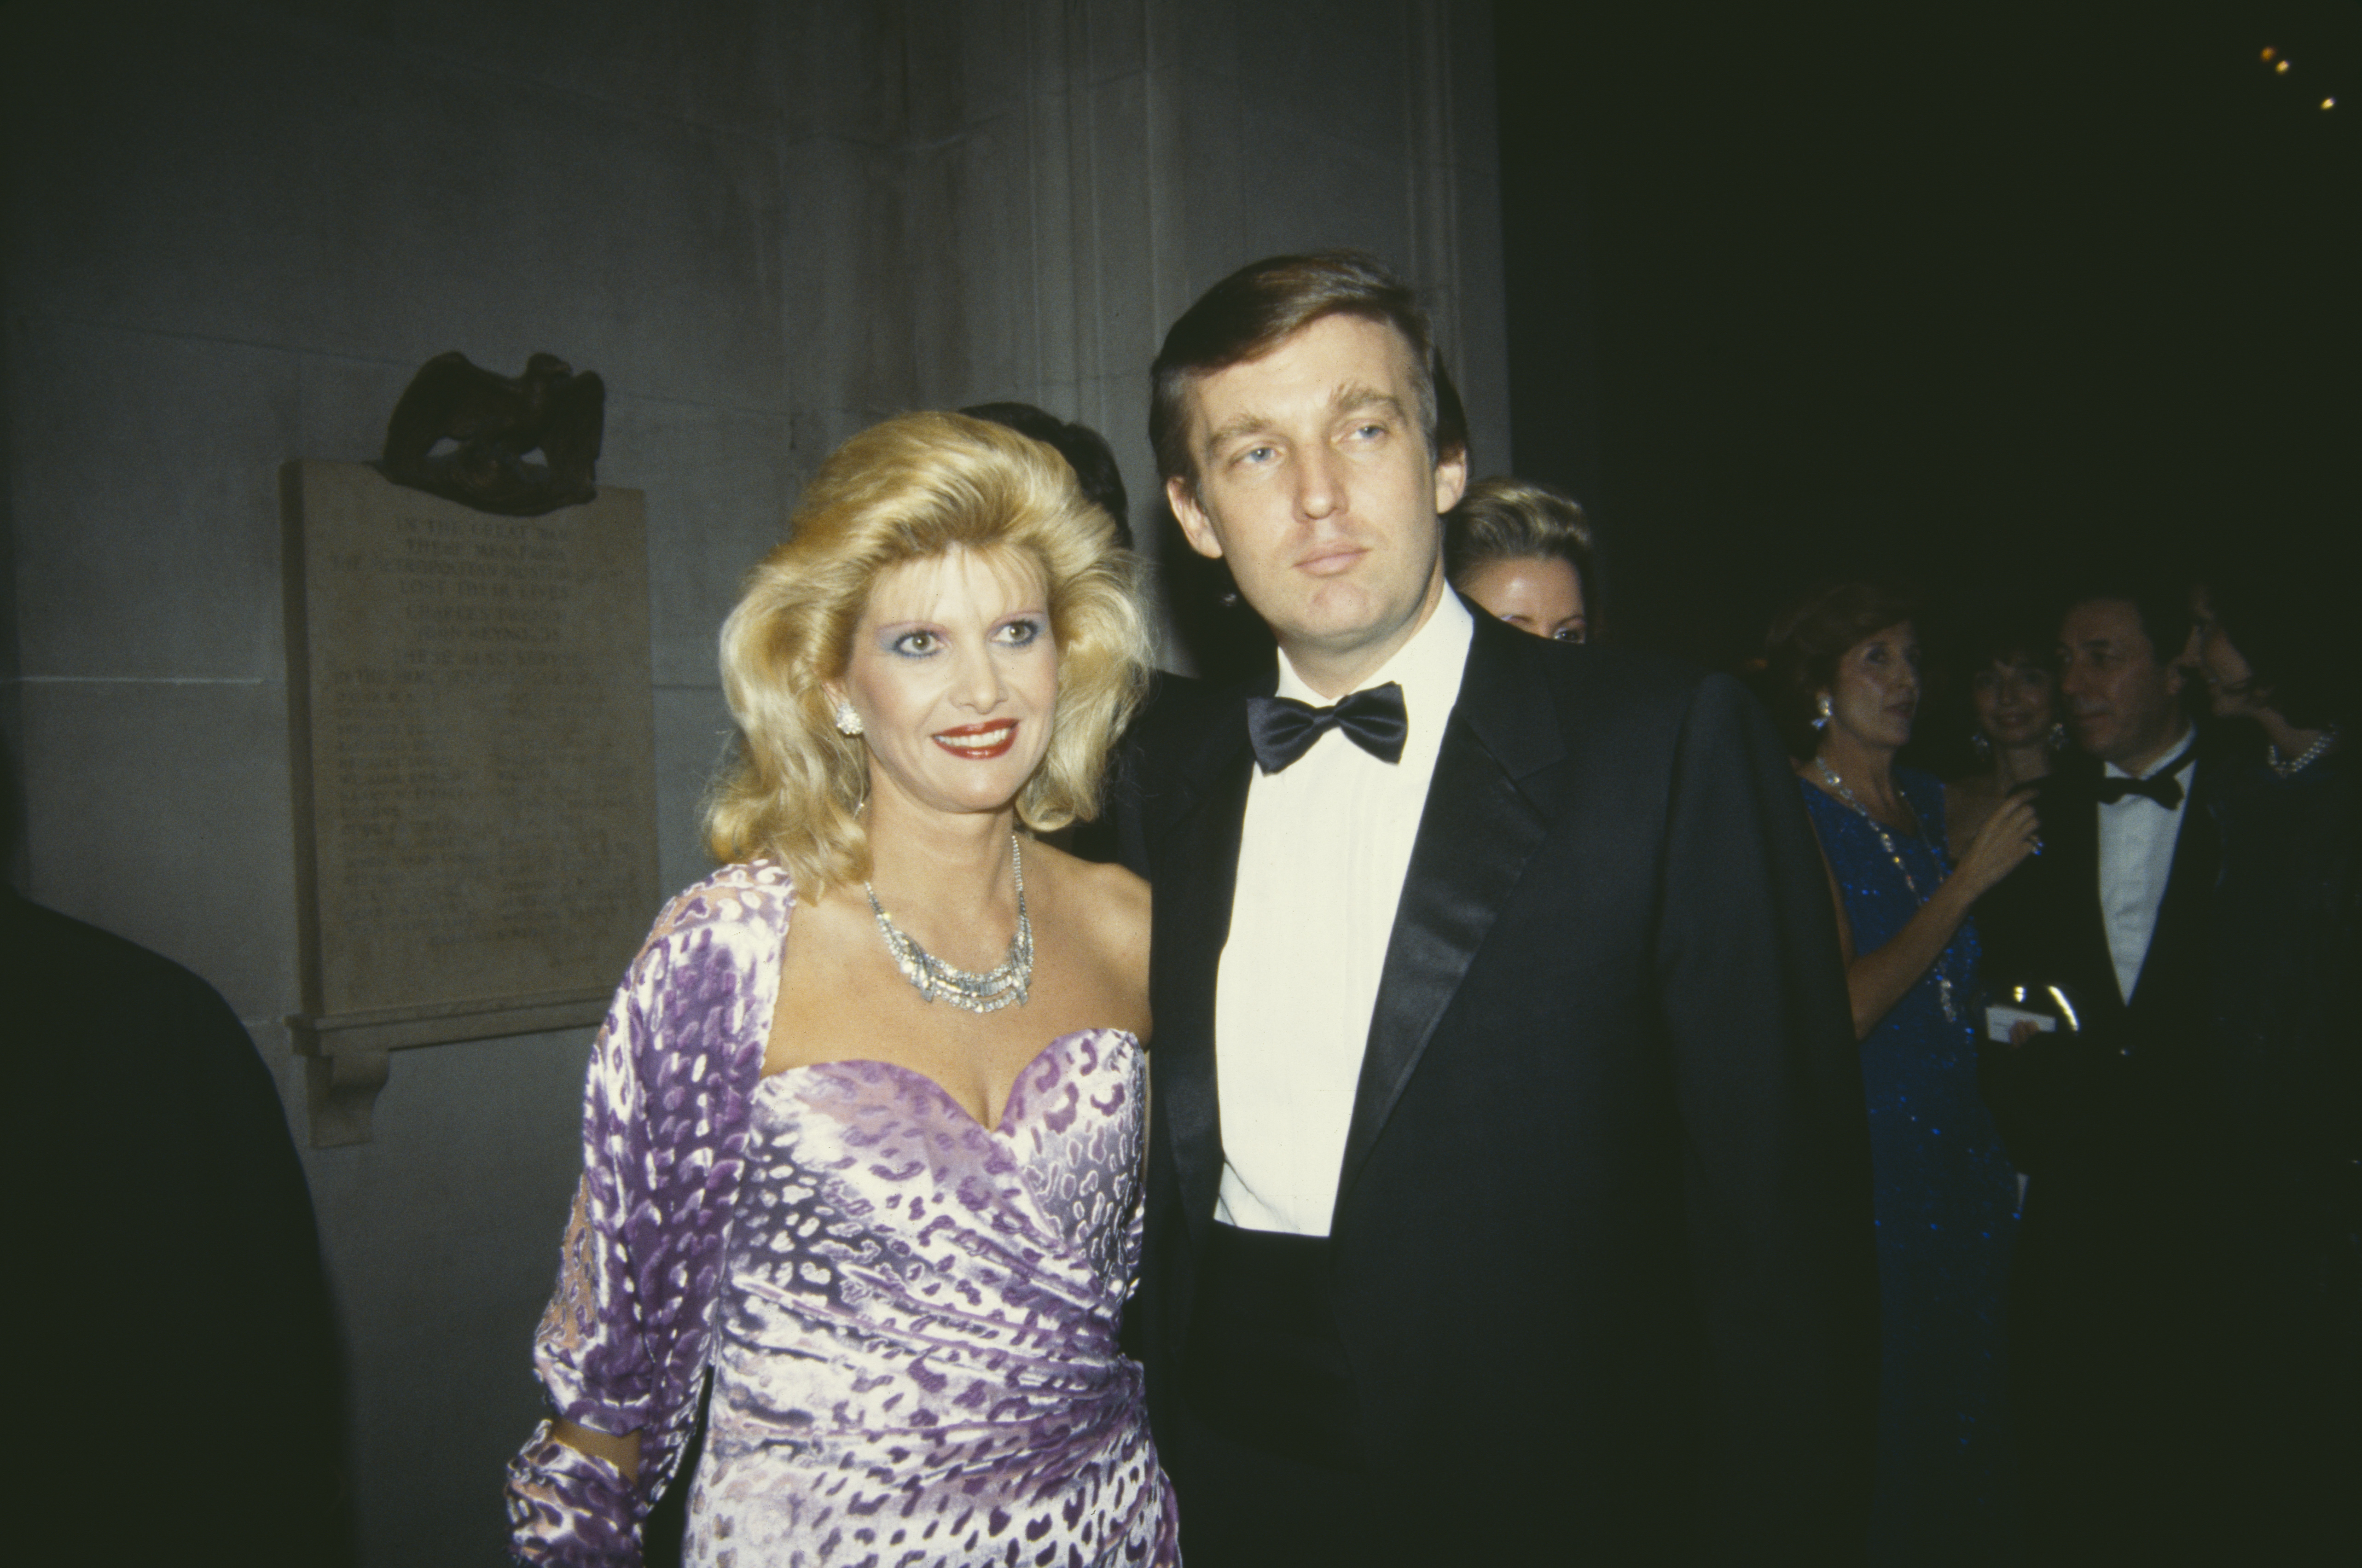 Trump dating 10 years old girl